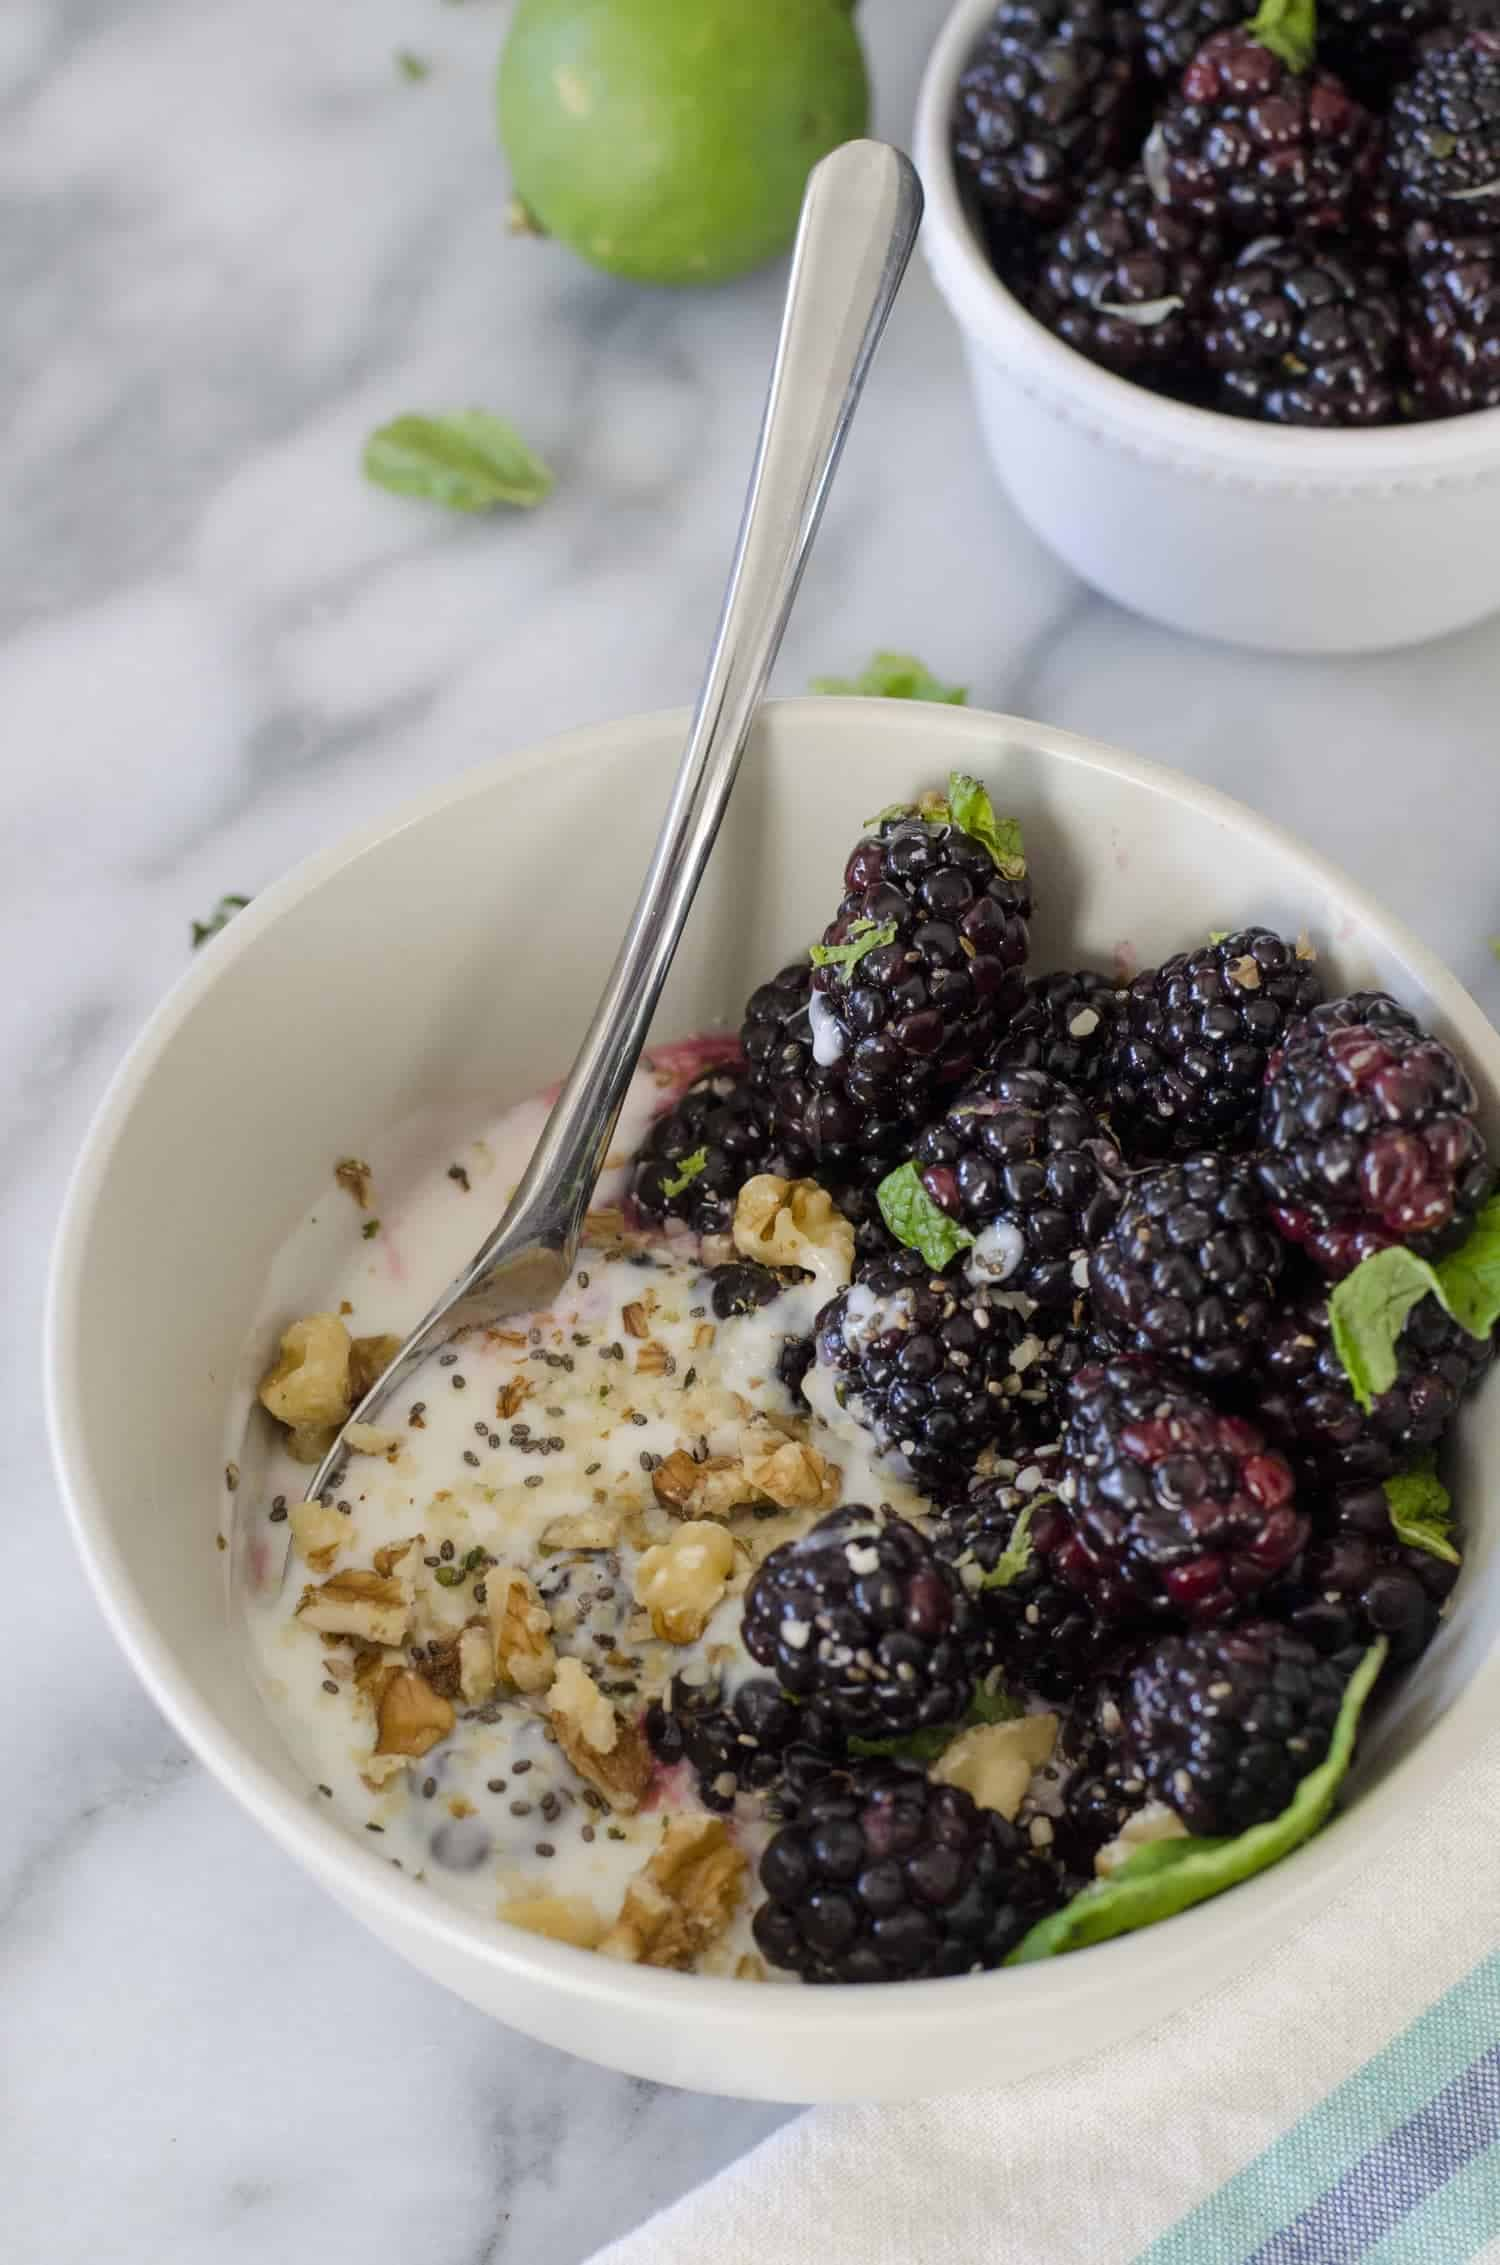 Blackberry Mint Lime Yogurt Bowls! Fresh blackberries tossed with lime juice and mint and served over greek yogurt. A healthy, protein packed breakfast or snack. vegetarian and gluten-free | www.delishknowledge.com